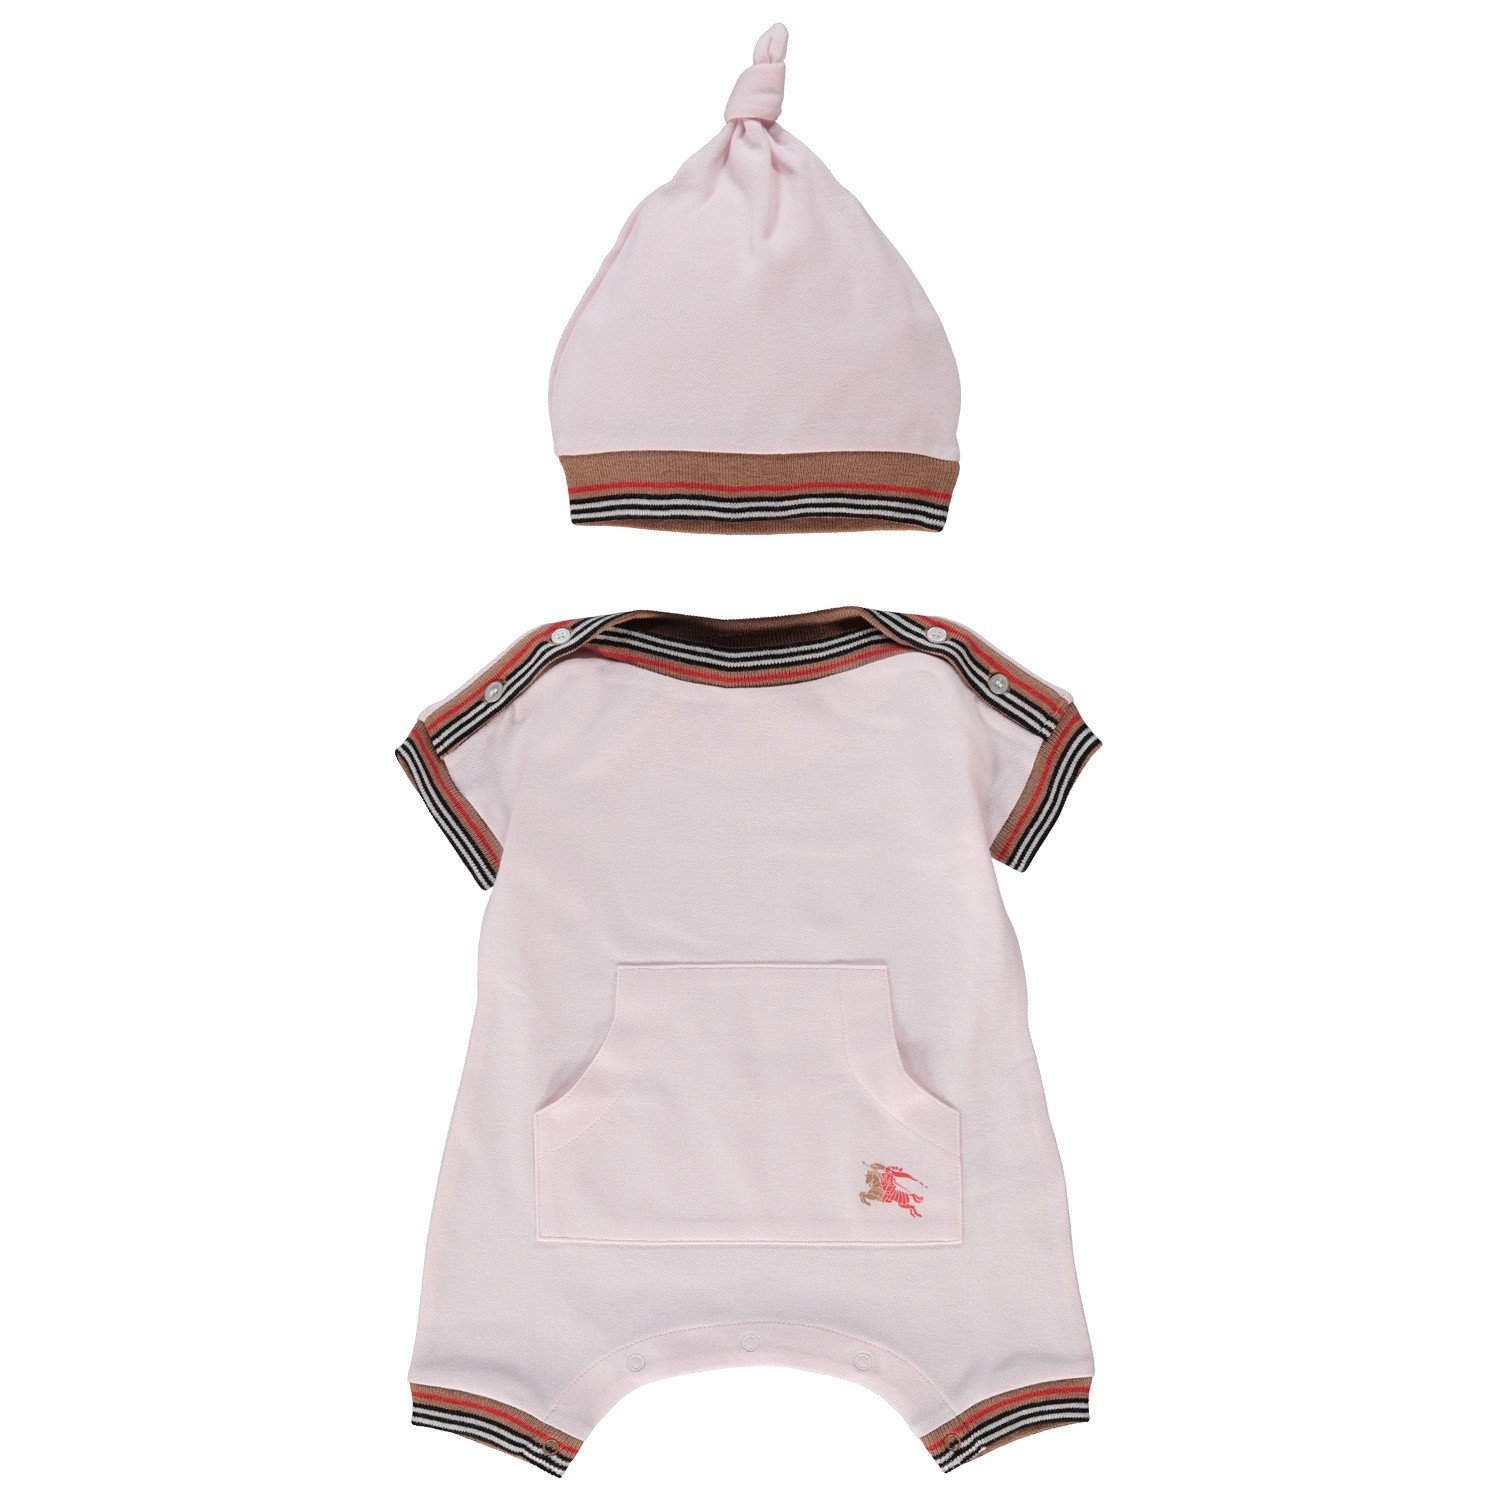 Picture of Burberry 8002859 baby playsuit light pink